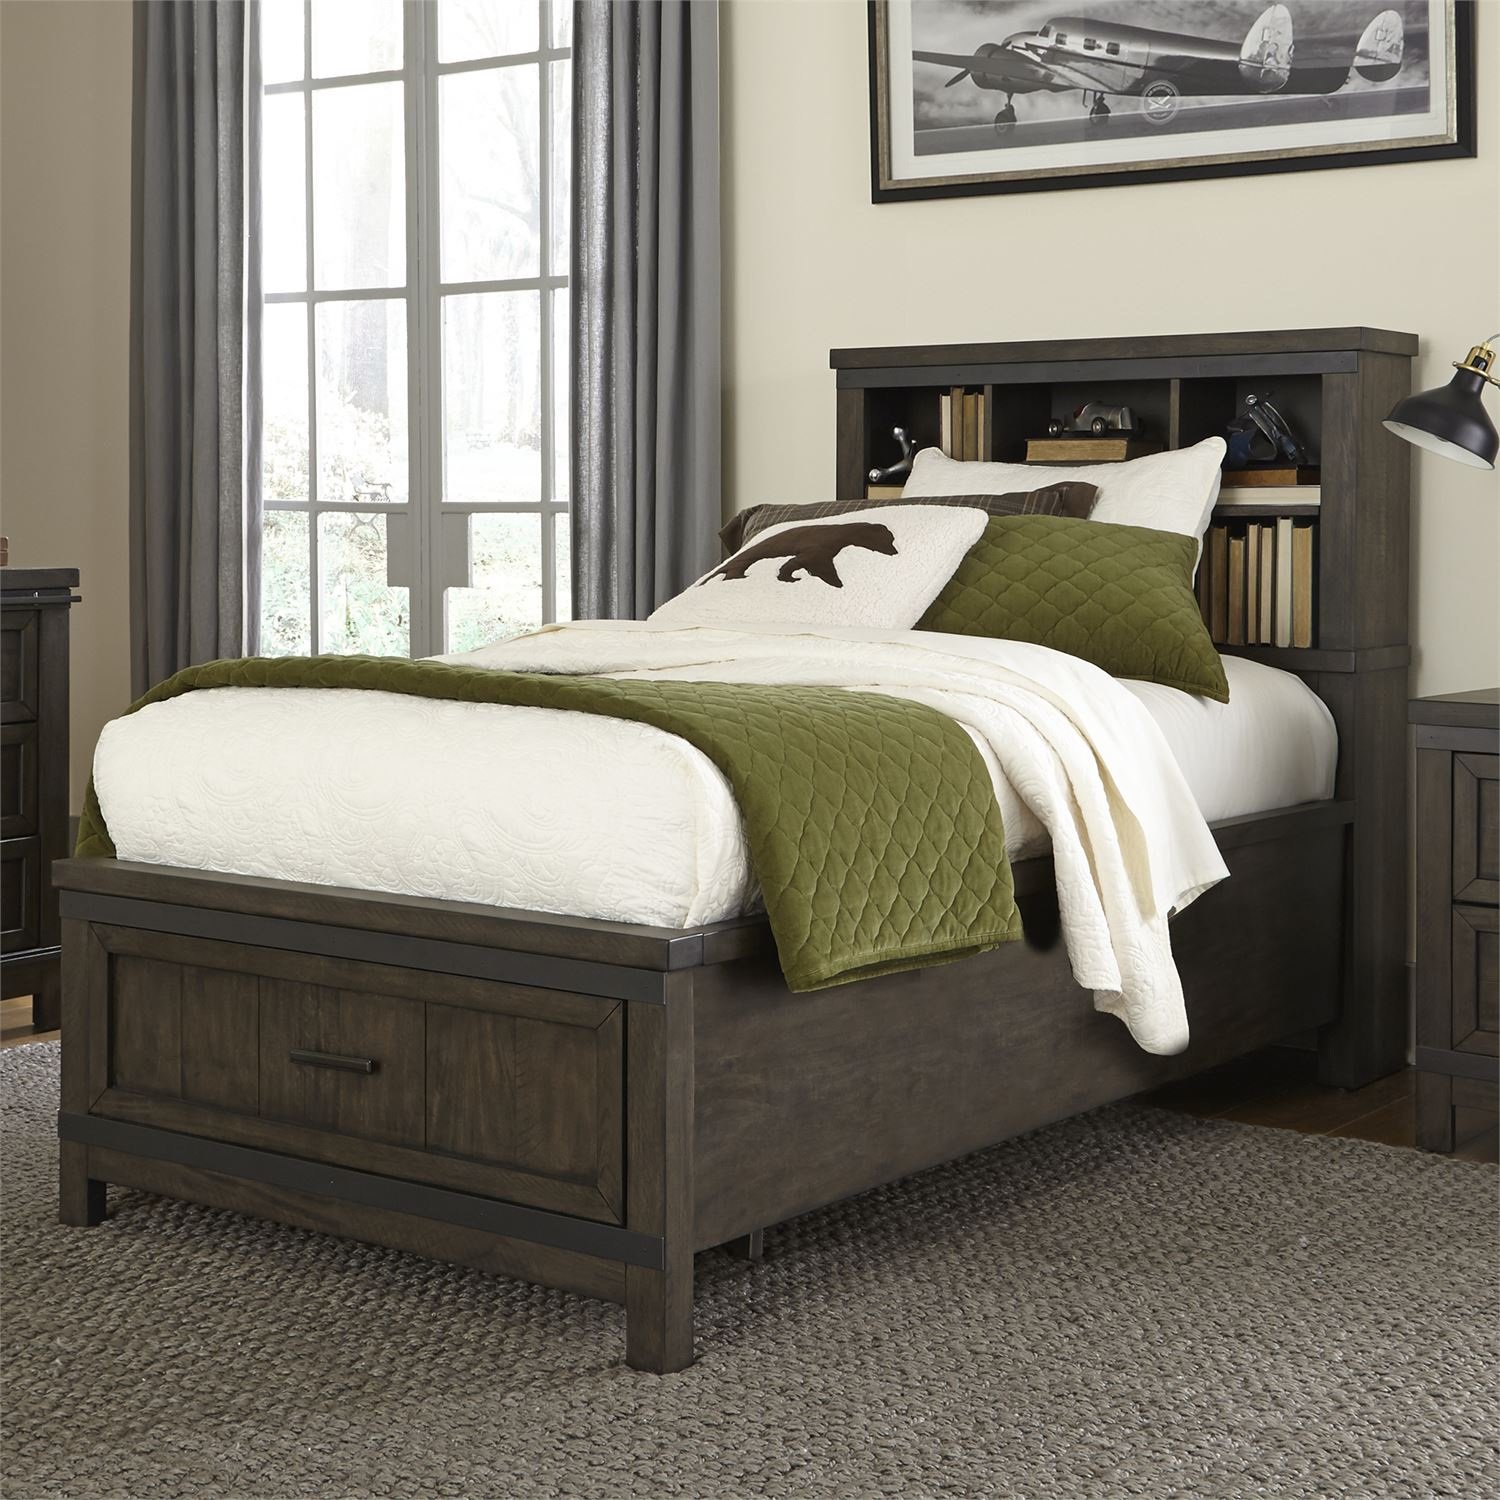 Thornwood Twin Bookcase Storage Bed